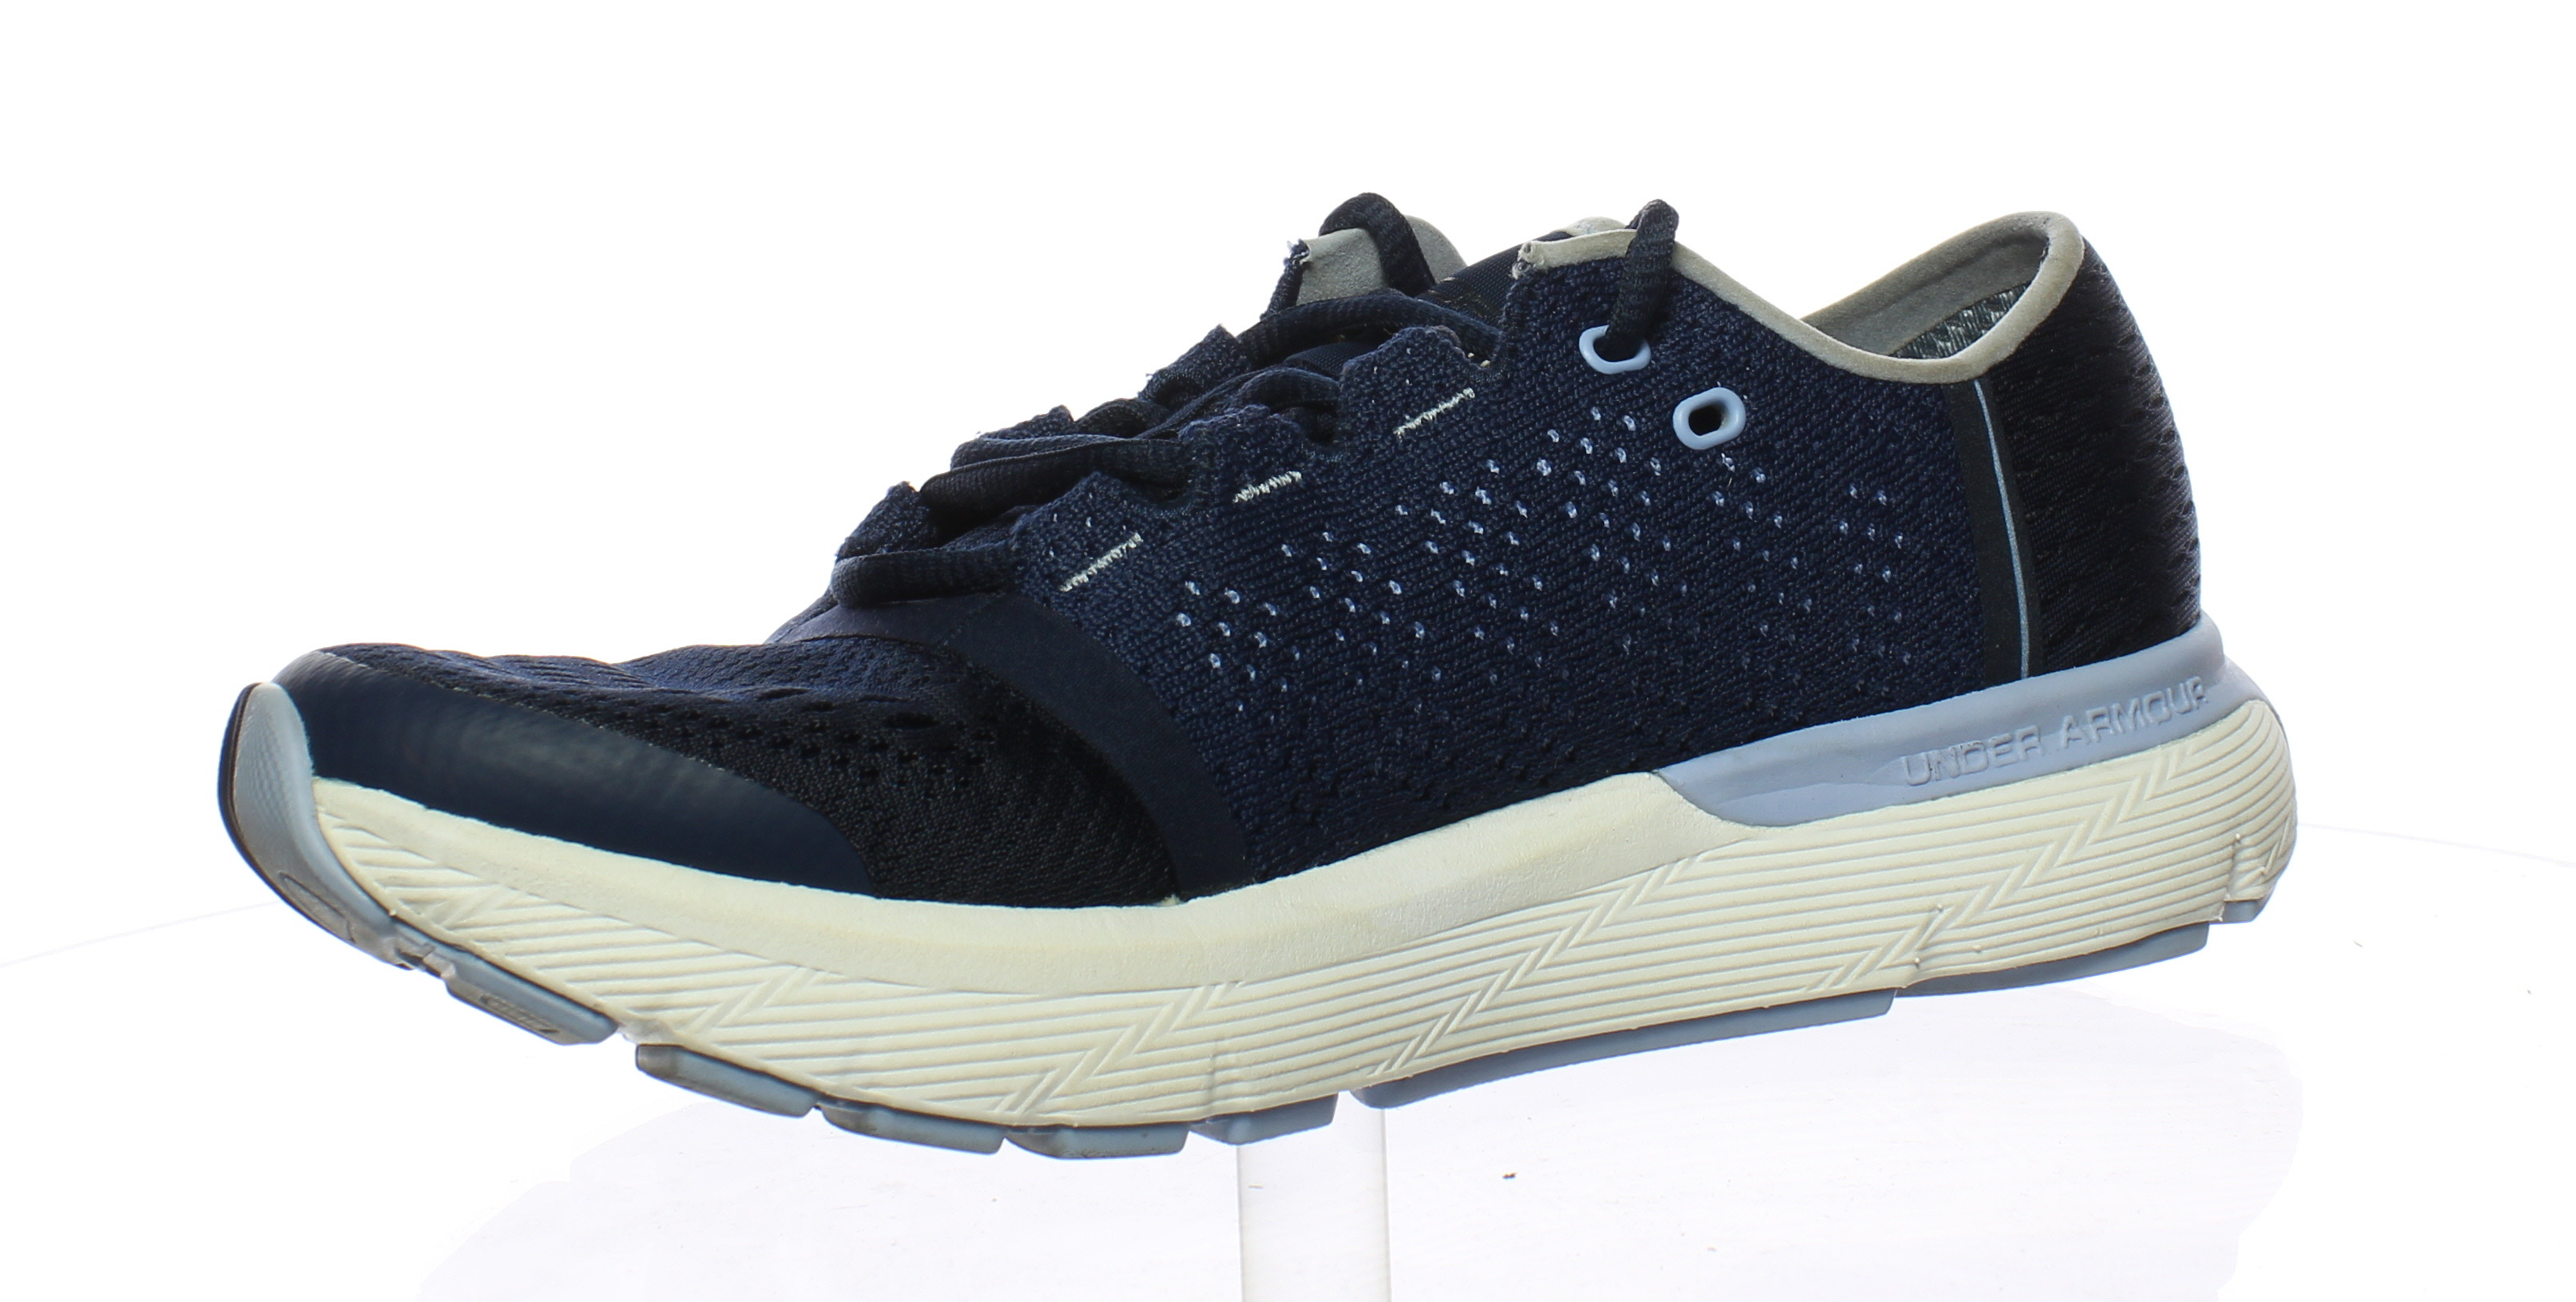 ... Picture 2 of 4  Picture 3 of 4  Picture 4 of 4. Under Armour Womens  Blue Running Shoes ... a252df7853